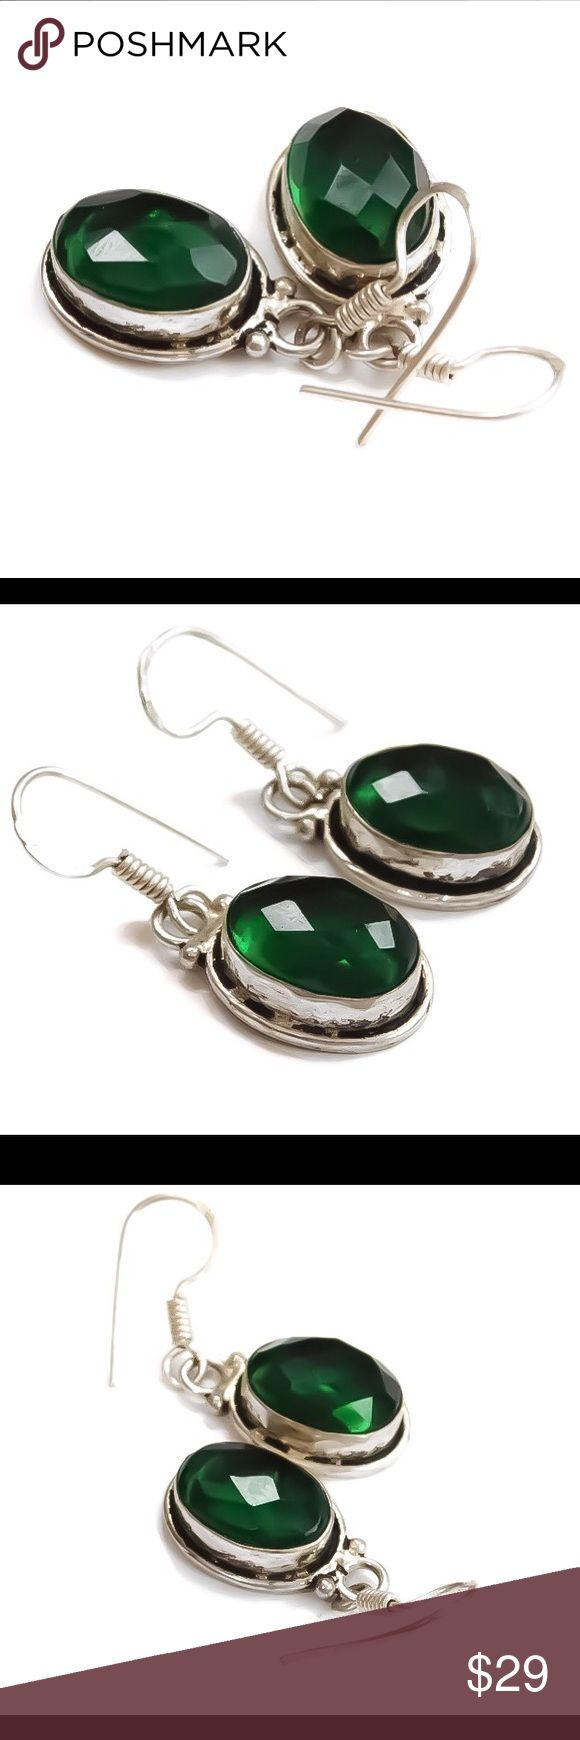 EMERALD Drop 925 Silver Earrings A gorgeous green pair of genuine emerald gemstone drop earrings. The emeralds rest in solid 925 sterling silver bezel settings and are suspended from 925 sterling silver fish hook/shepards hook ear wires. Posh rules only. No trades, no PayPal, no lowball offers; please & thank you. Serious buyers only. nejd Jewelry Earrings